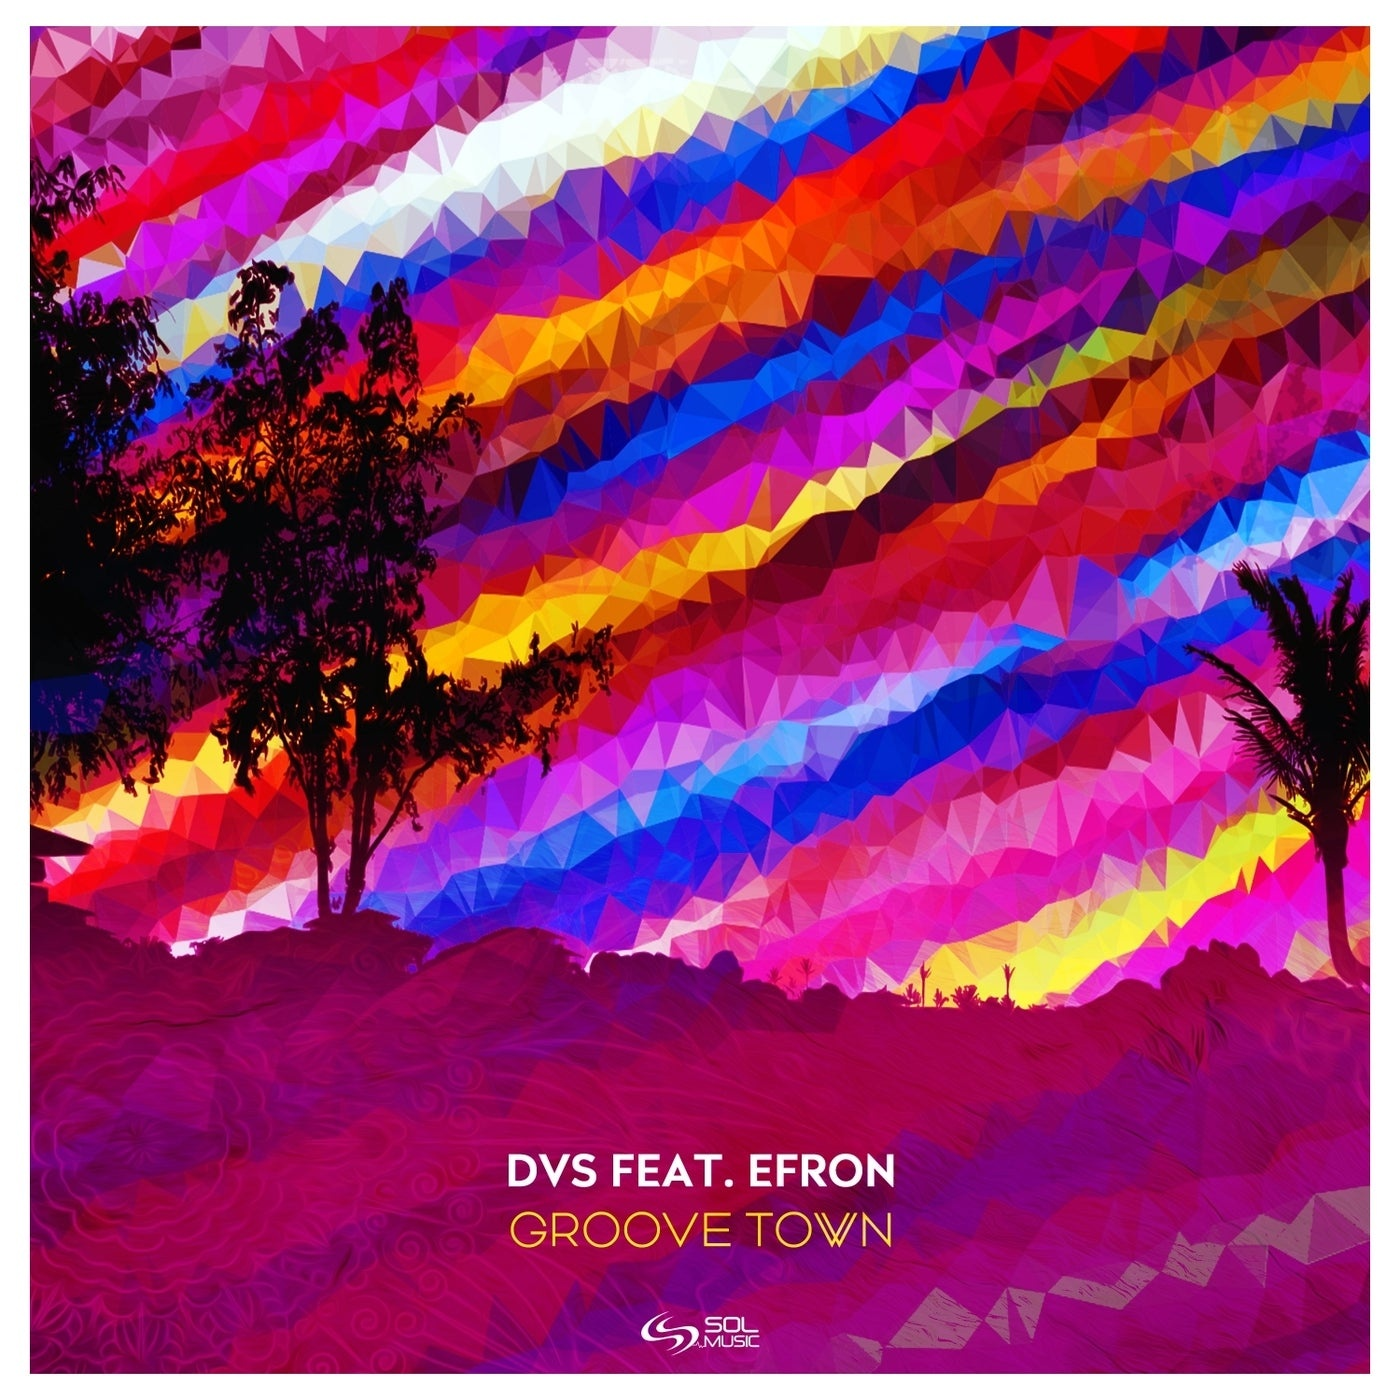 Cover - DVS, Efron - Groove Town Feat. EFRON (Original Mix)